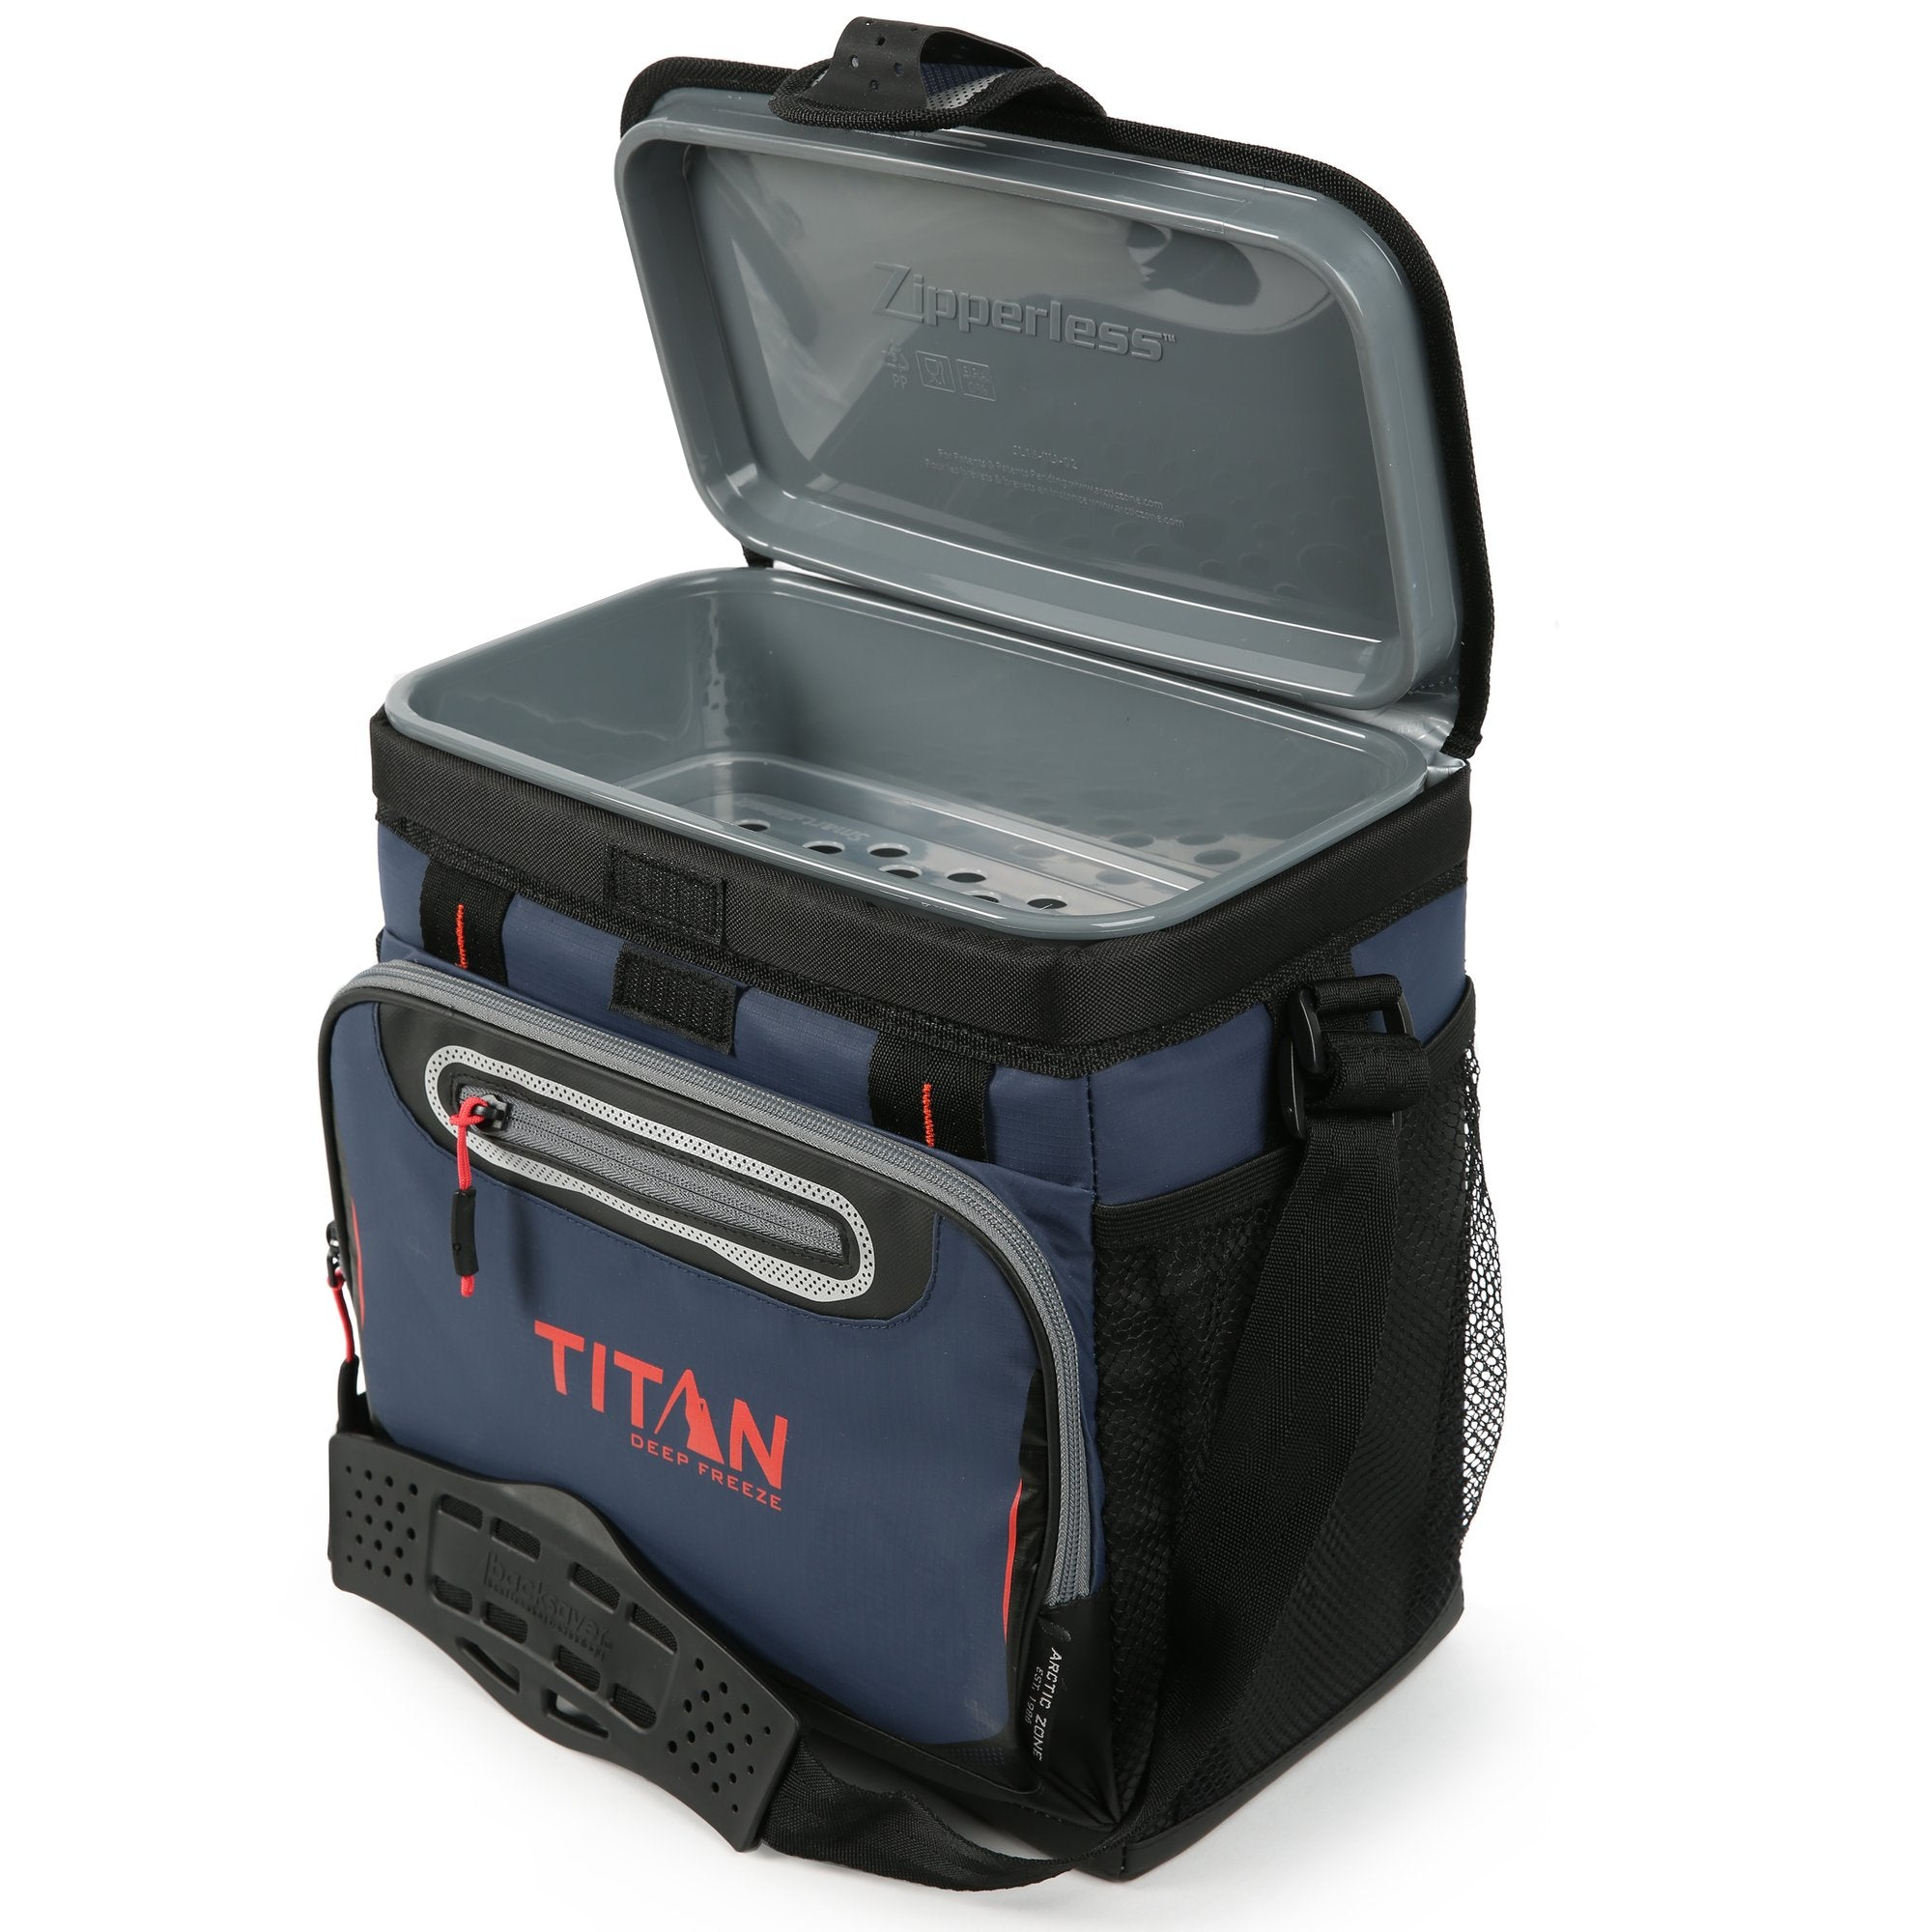 Titan Deep Freeze 16 Can Zipperless Hardbody Cooler